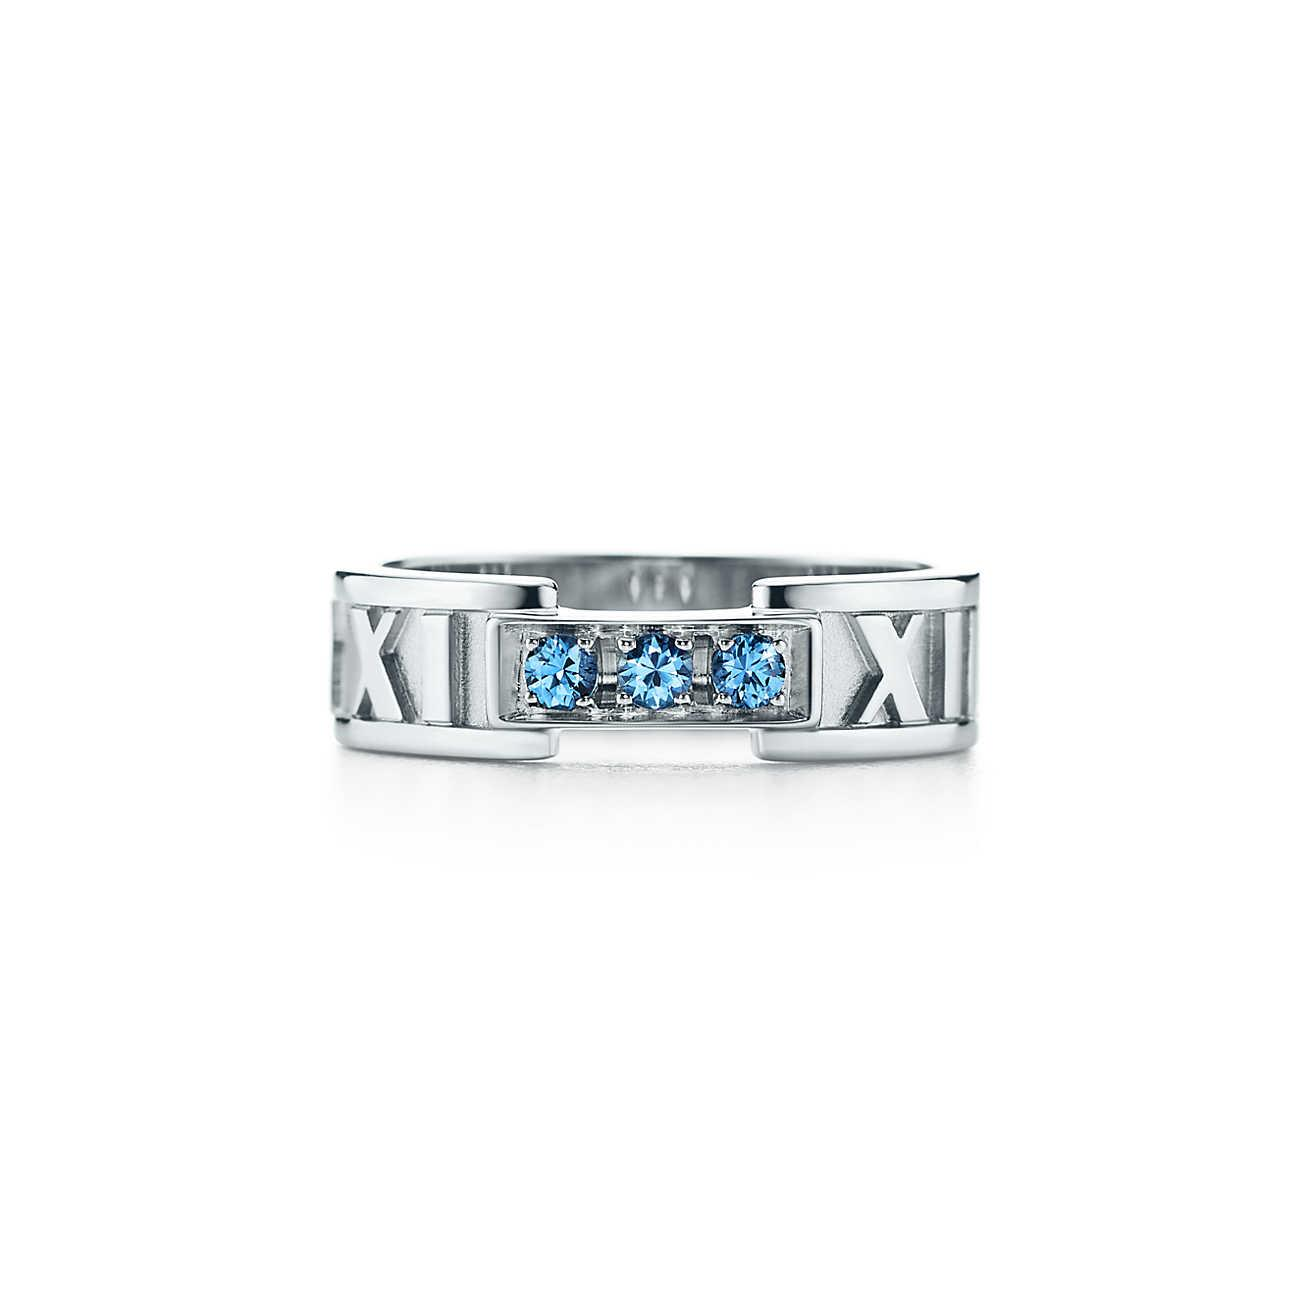 c1353104d Tiffany & Co. Atlas® Closed Narrow Ring In 18ct White Gold With ...